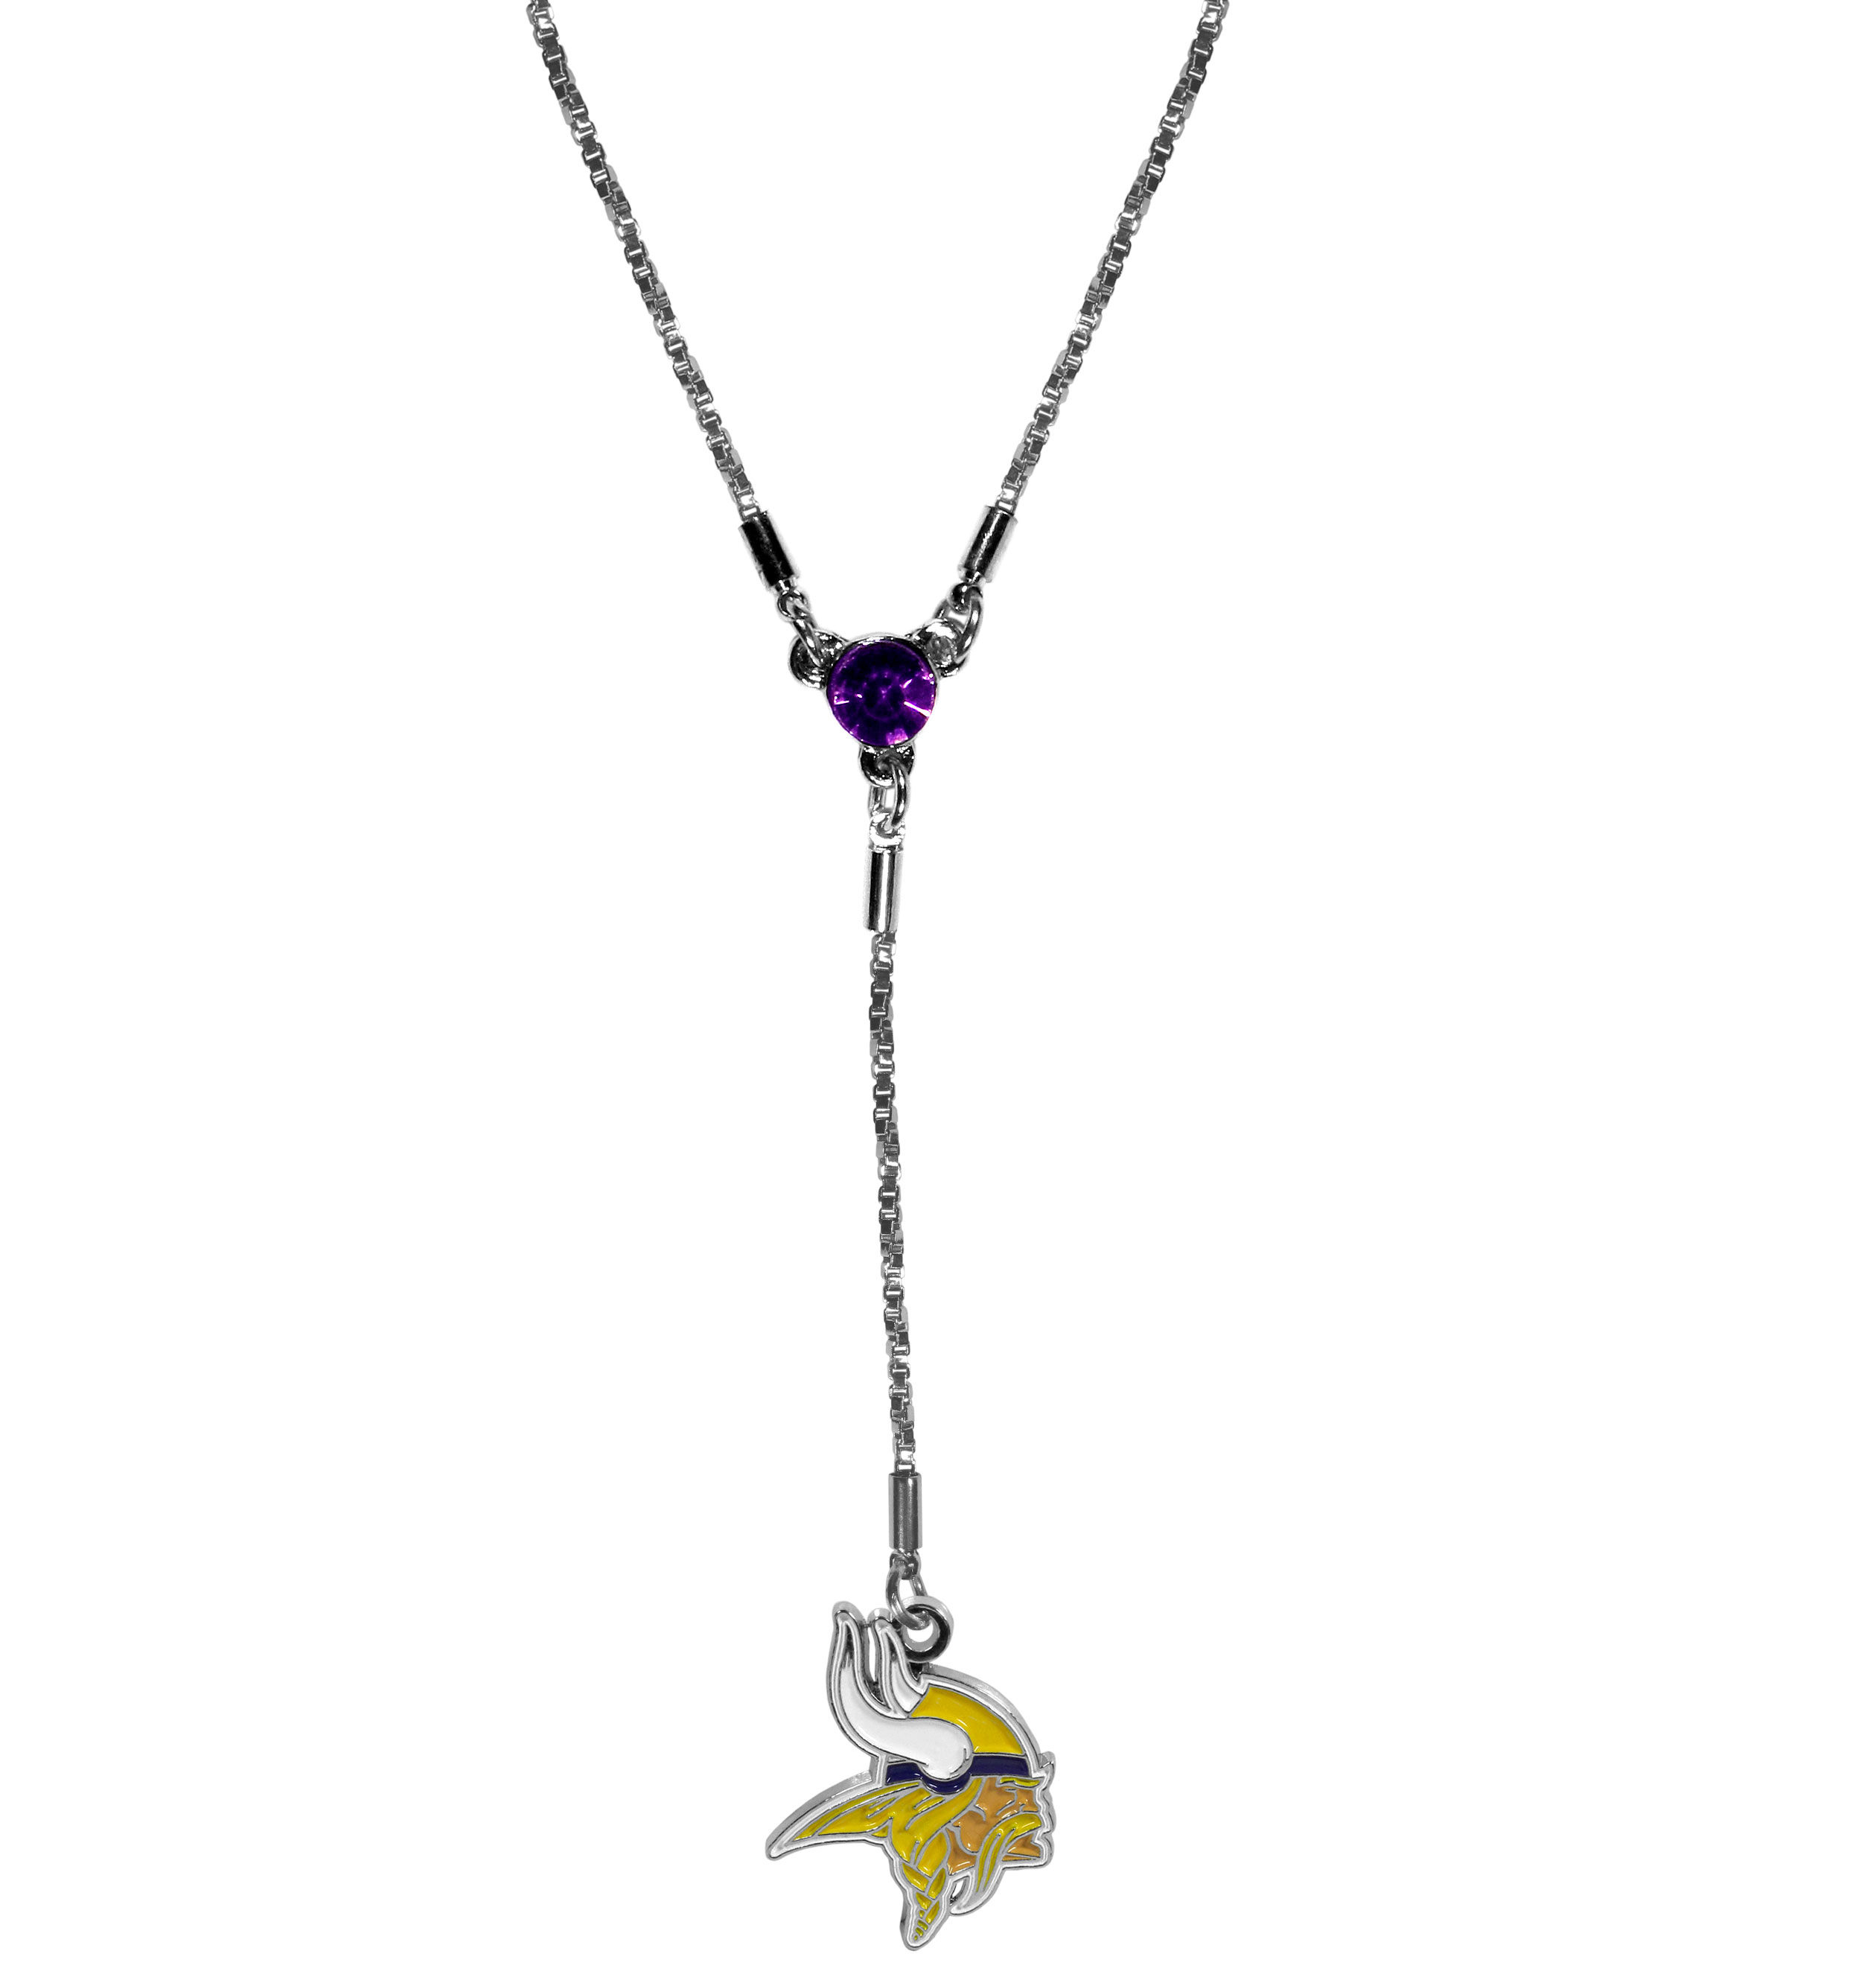 Minnesota Vikings Lariat Necklace - This designer look is a stylish version of the classic lariat necklace. The chic box chain is 16 inches long with a 2 inch extender, the Y drop features a large team colored crystal with an expertly carved team charm. This trendy look is a perfect blend of sporty and chic making is a mush-have fashion accessory for the fashion-forward Minnesota Vikings fan.